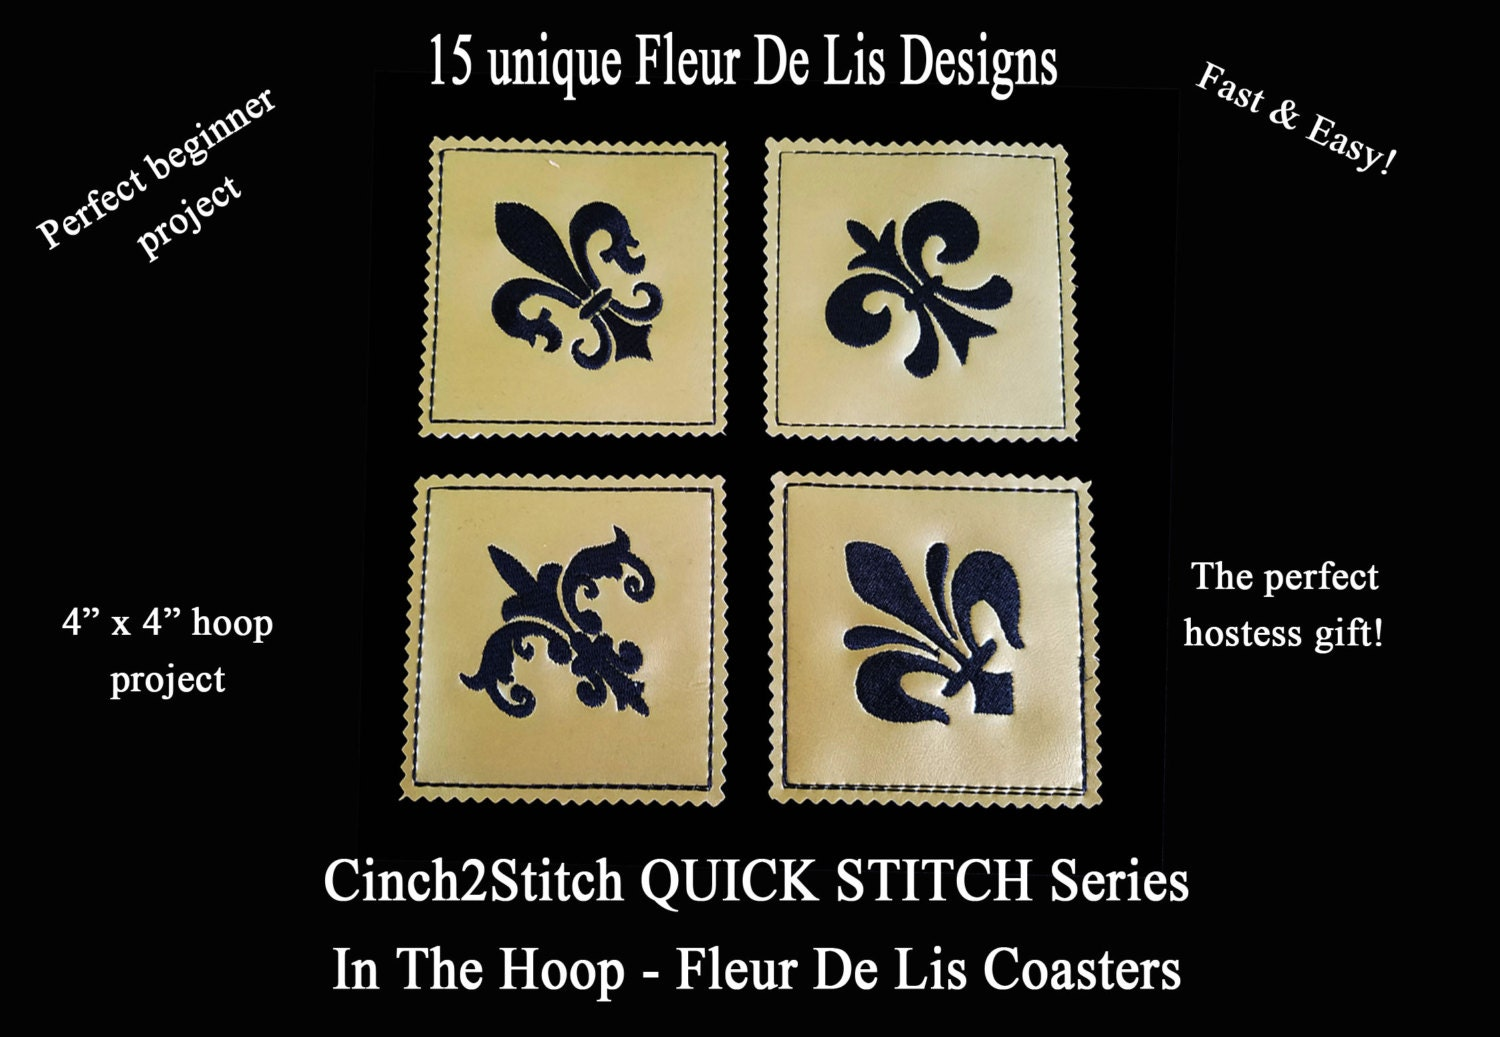 Quick Stitch New Orleans Fleur De Lis Coasters In The Hoop